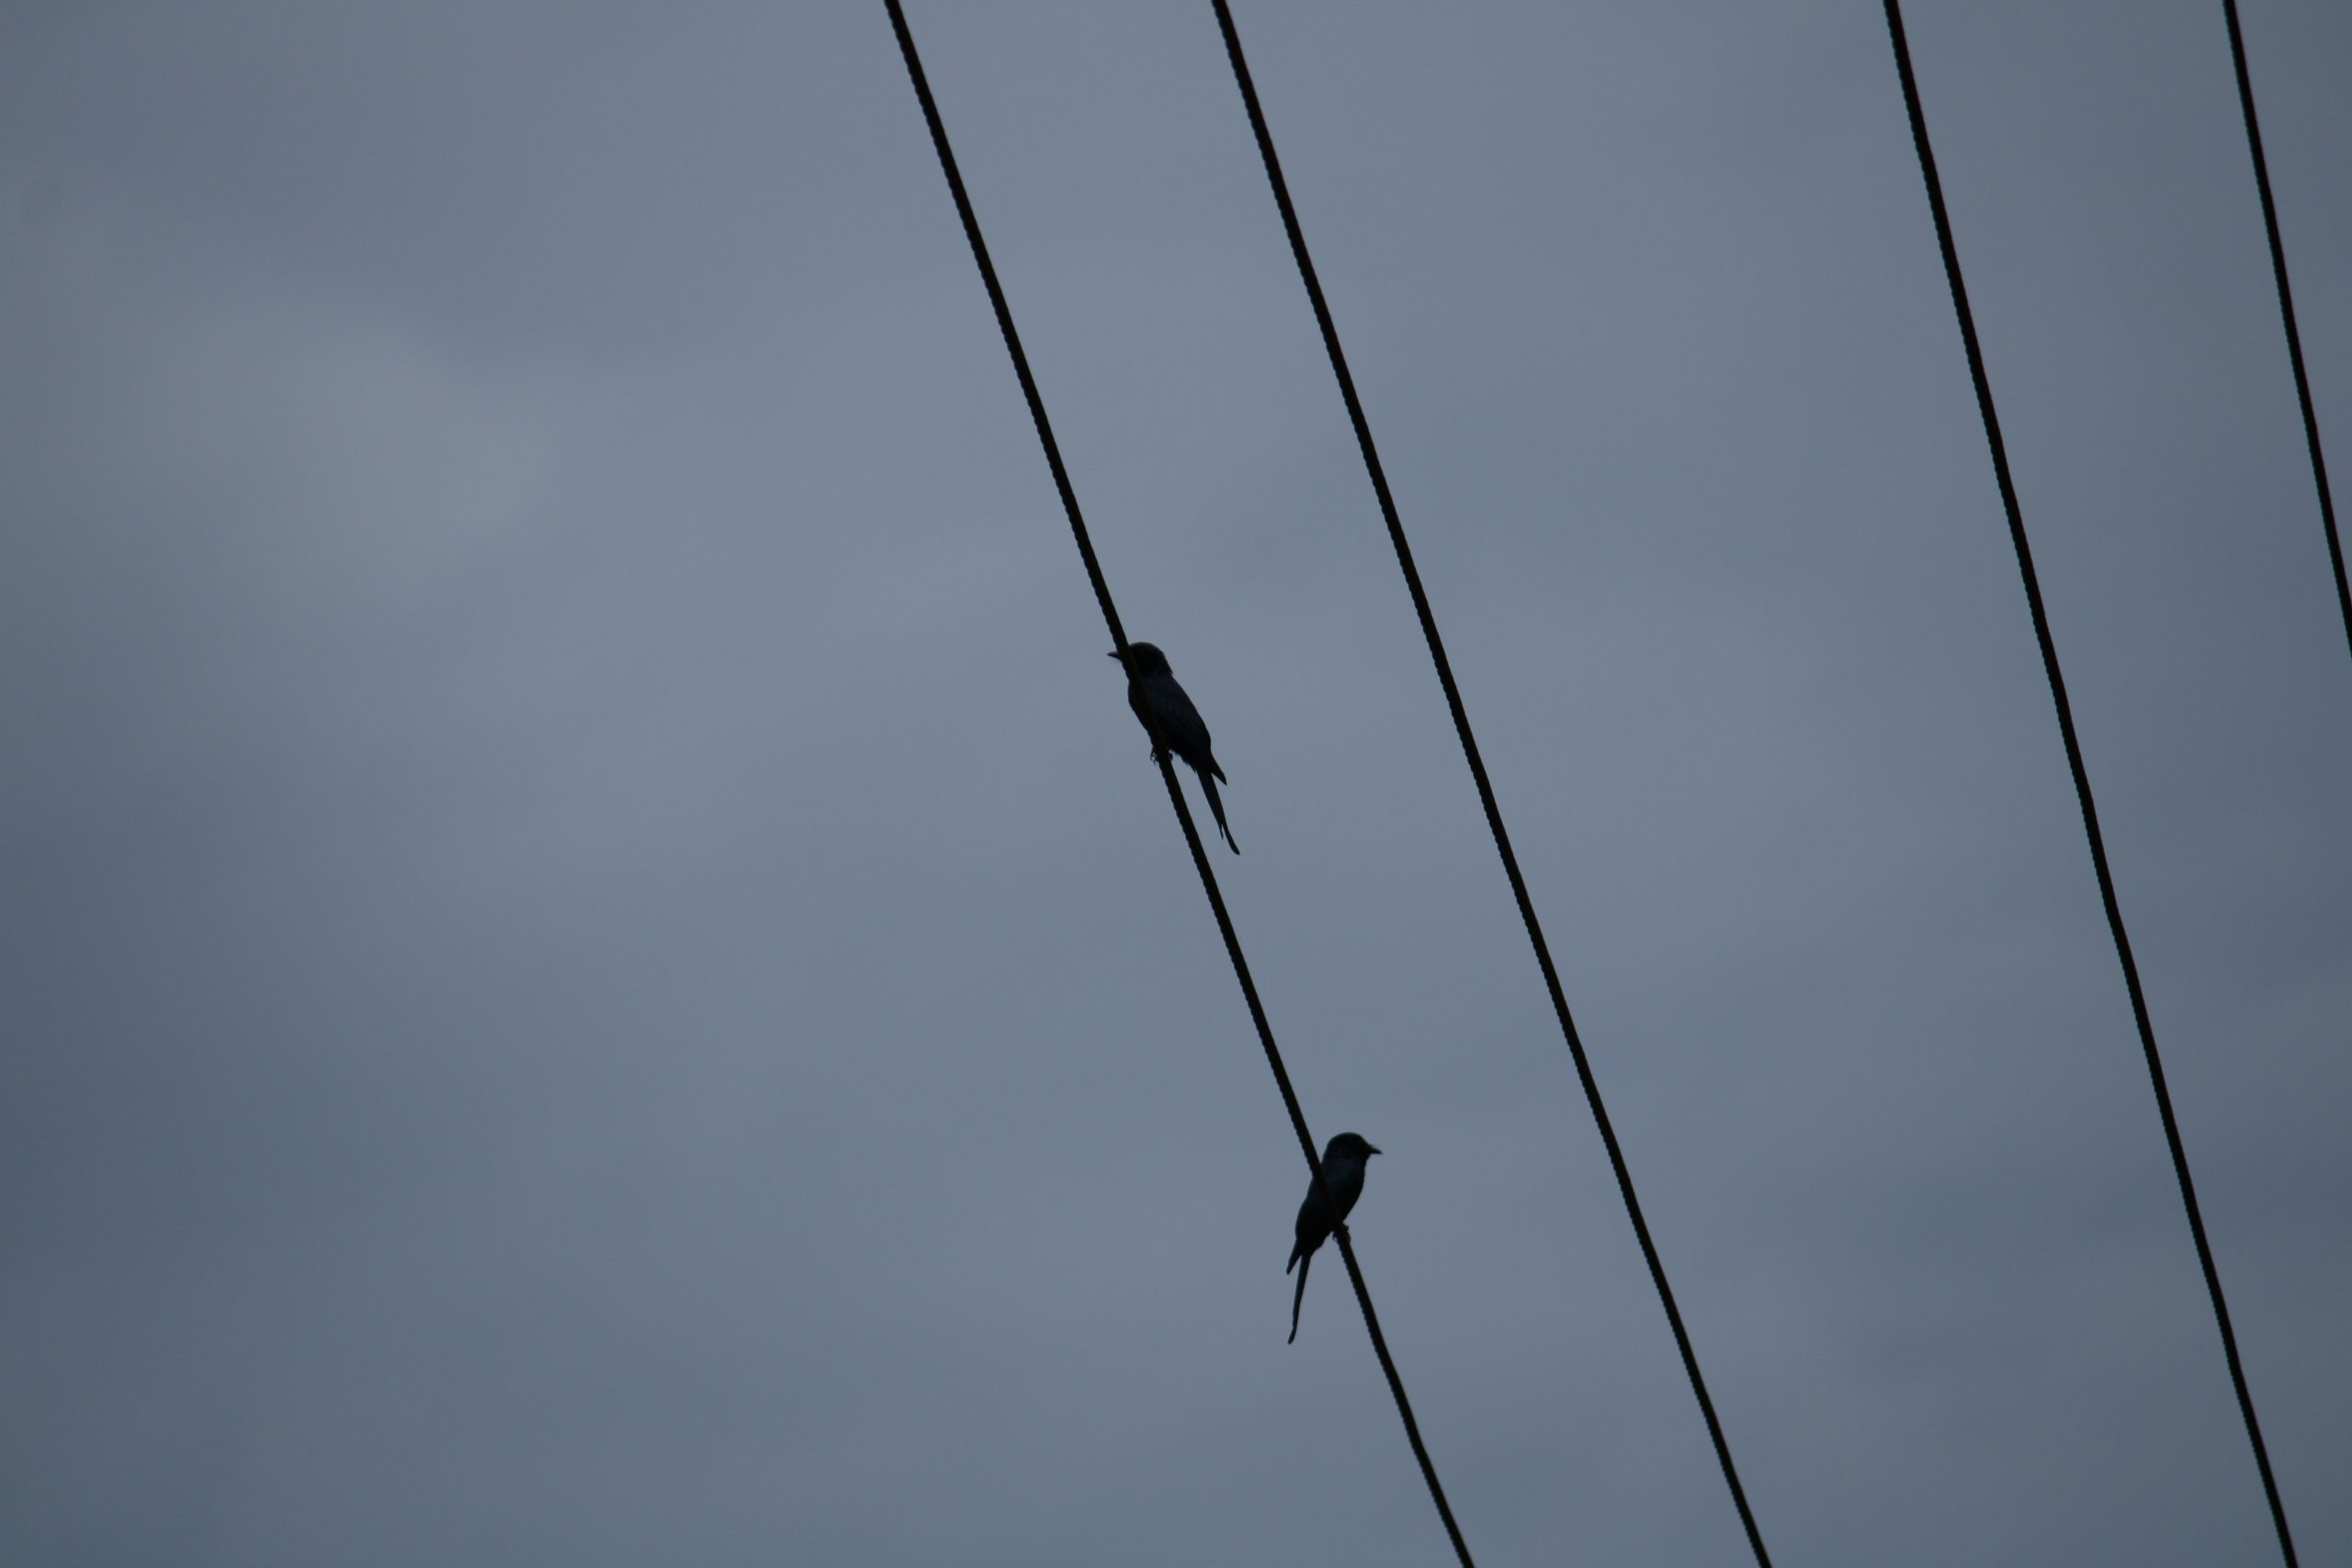 Birds sitting on electric line